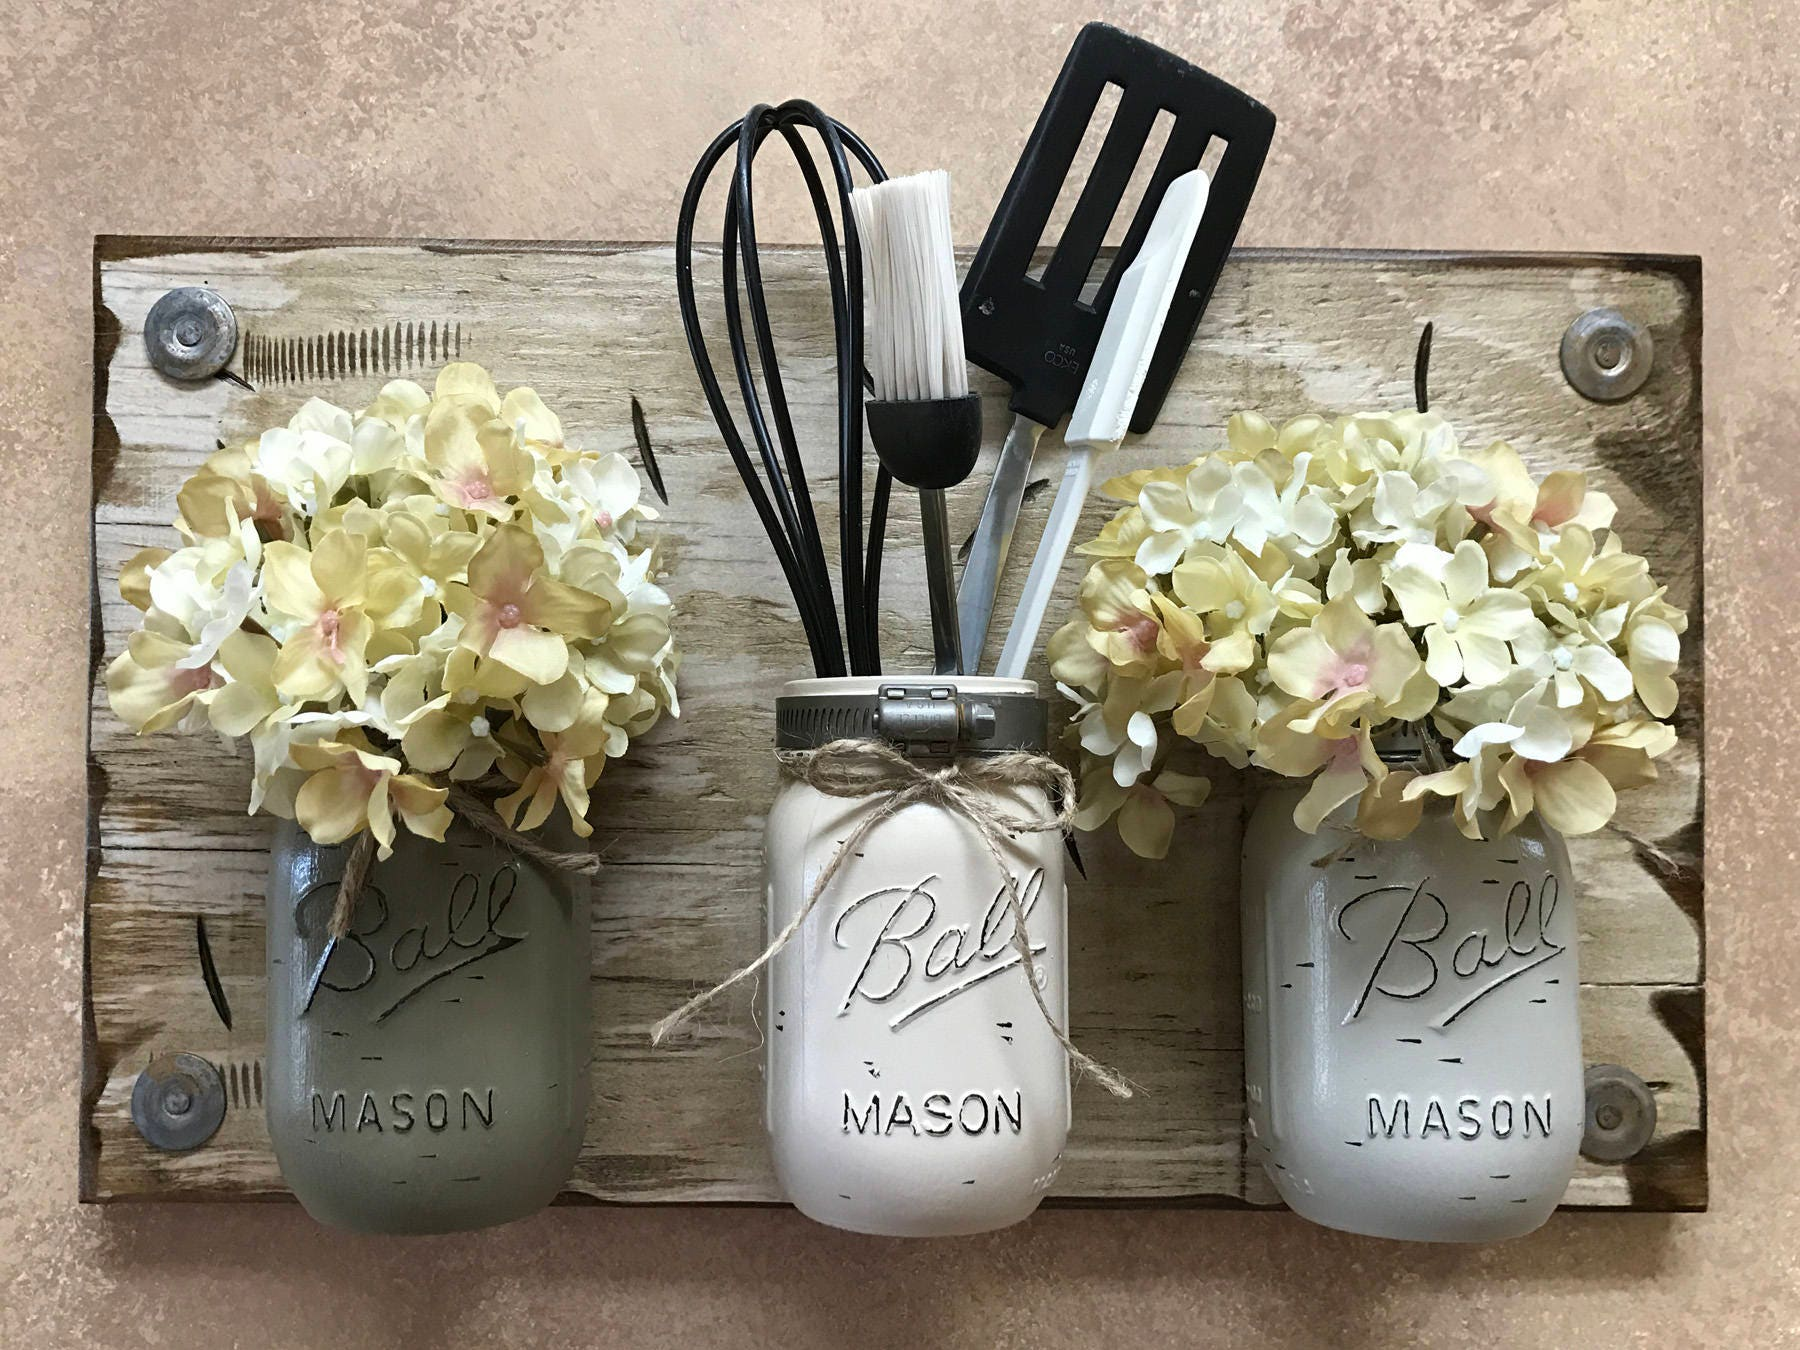 mason jar wall decor MASON Jar Wall Decor Sconce (Flowers optional) *Kitchen Utensil  mason jar wall decor